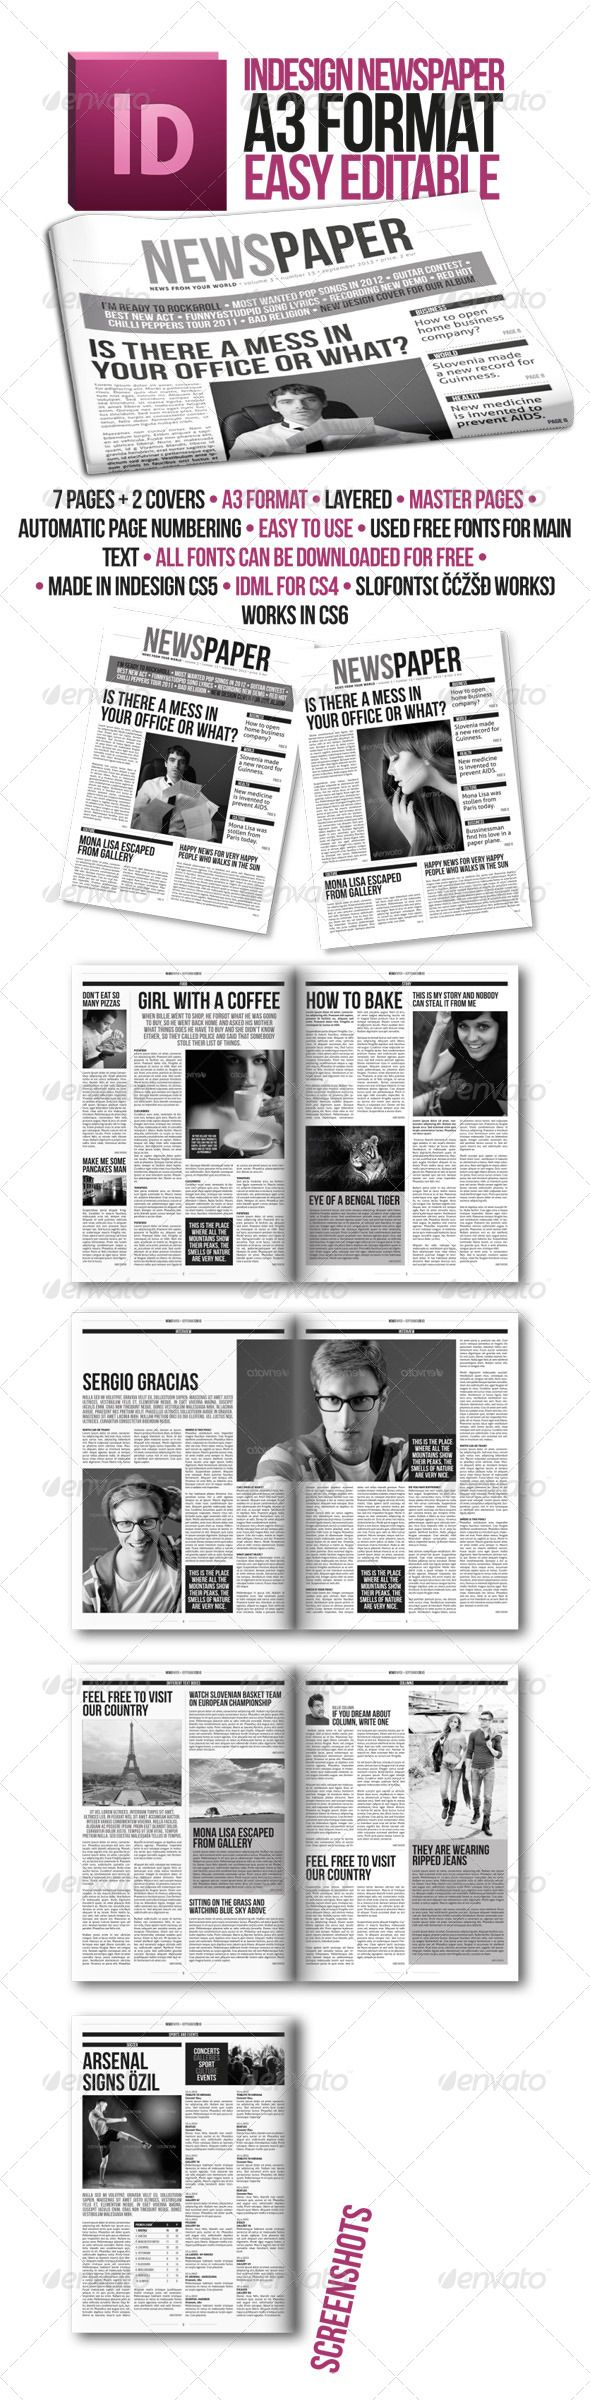 Indesign Modern Newspaper Magazine Template A3 | Diseño editorial ...